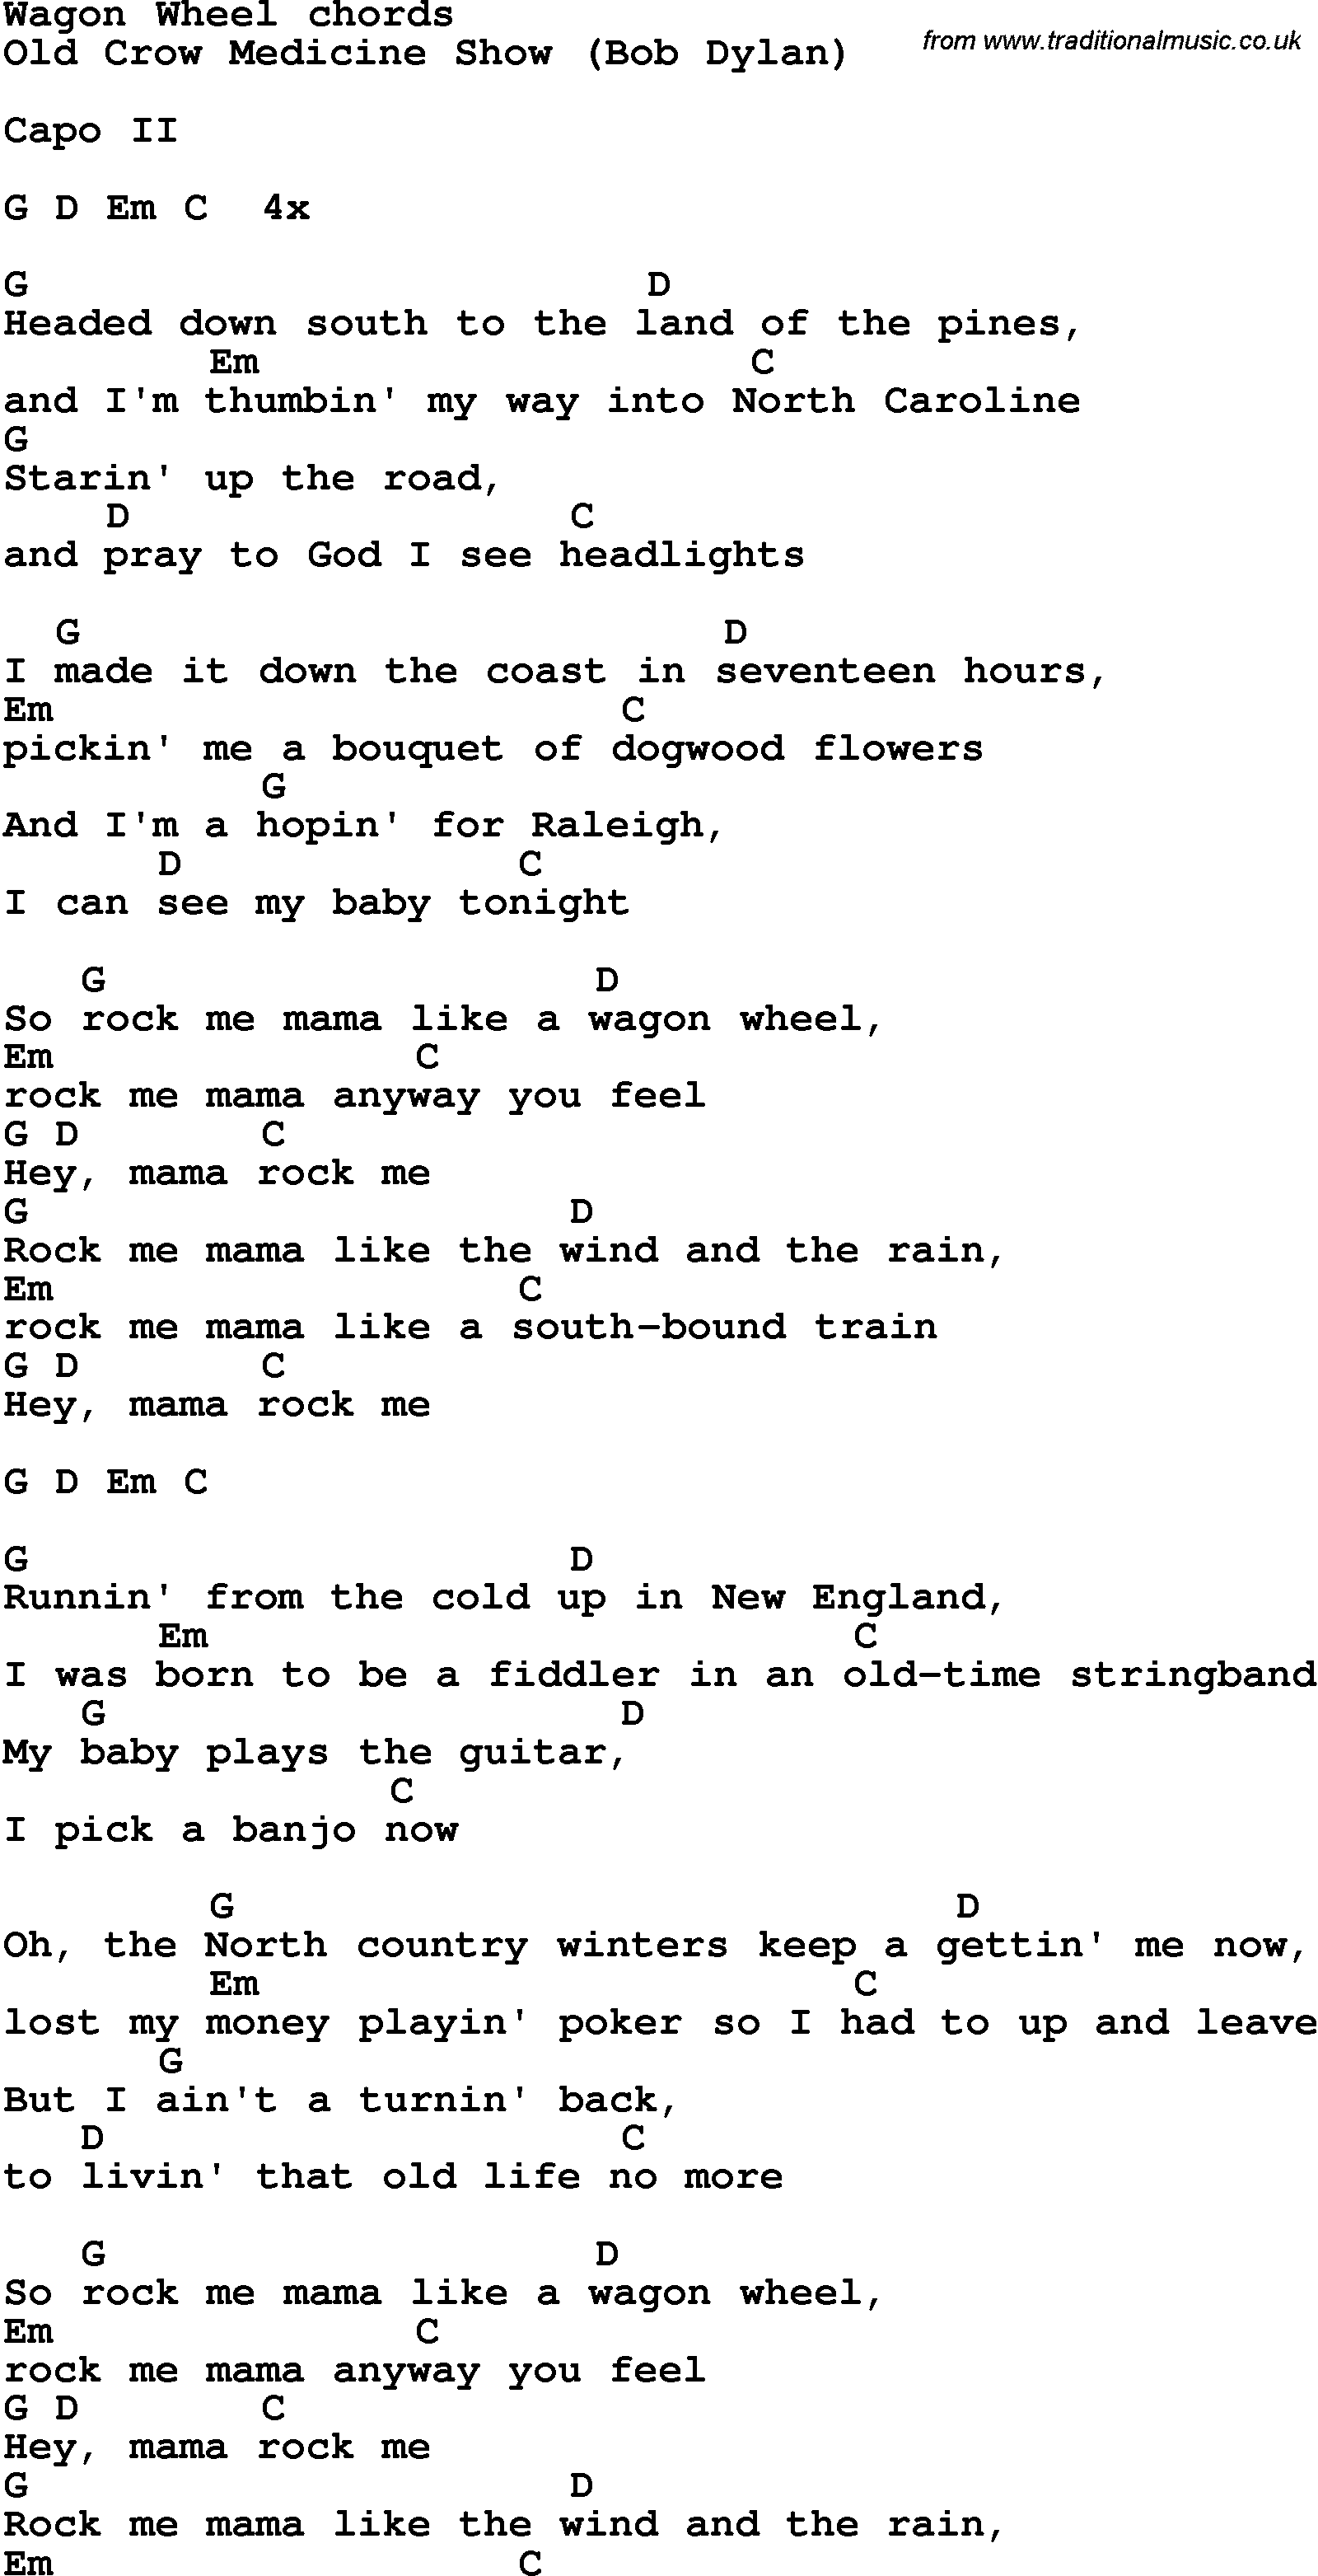 Song lyrics with guitar chords for Wagon Wheel